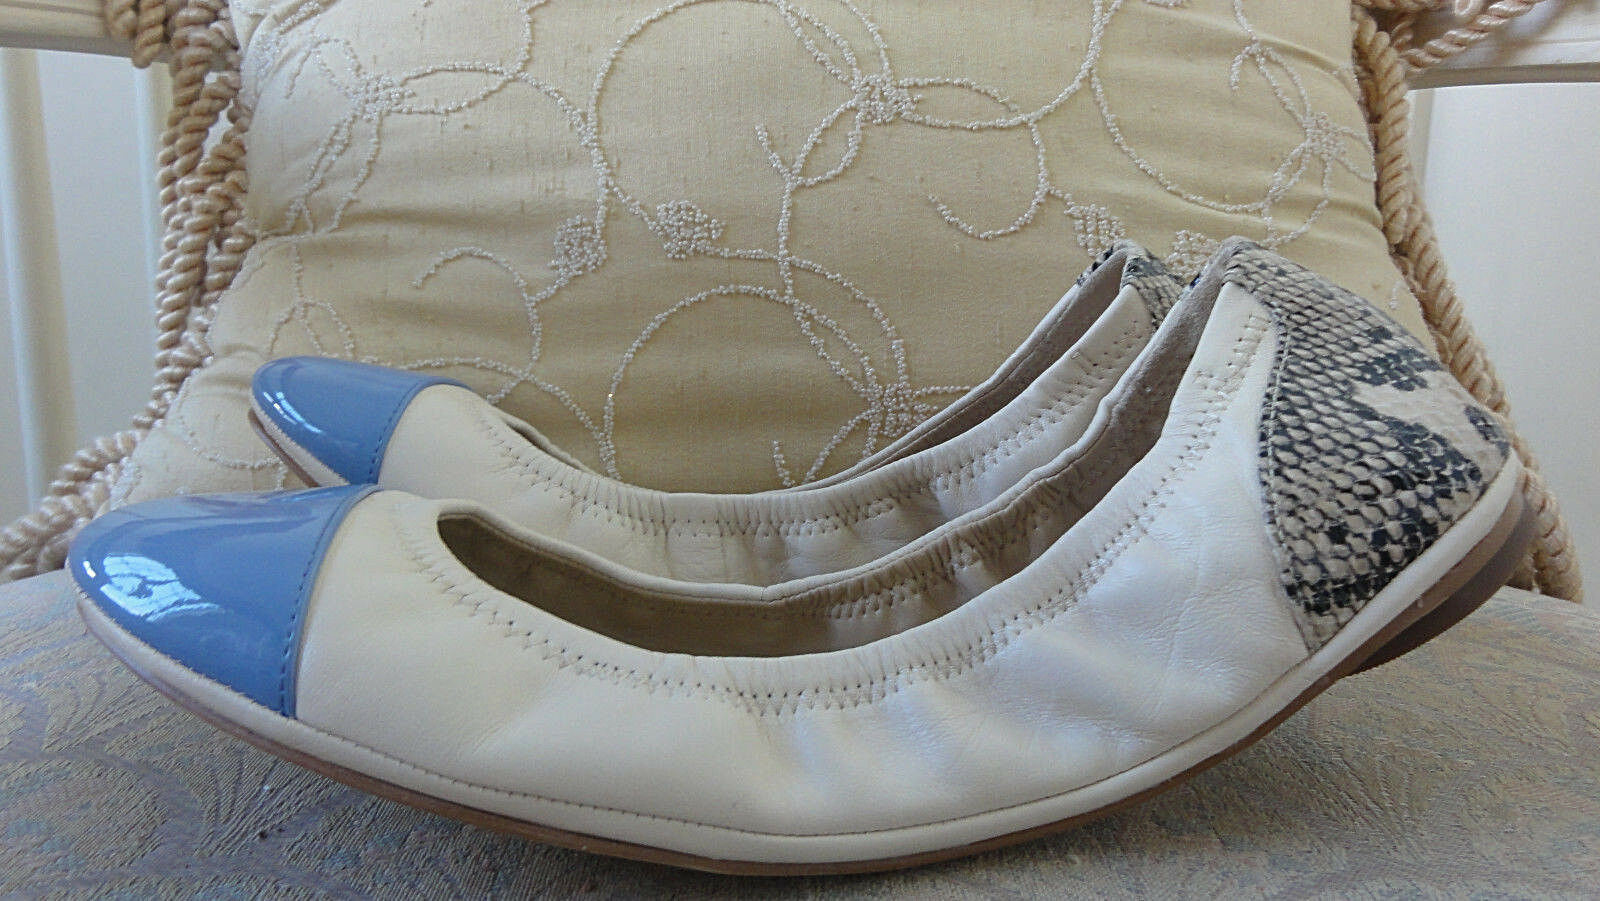 NEW SAKS FIFTH AVENUE LEATHER BALLET FLATS 10 WOMEN Blau CREAM SIZE 10 FLATS USA ded9a9